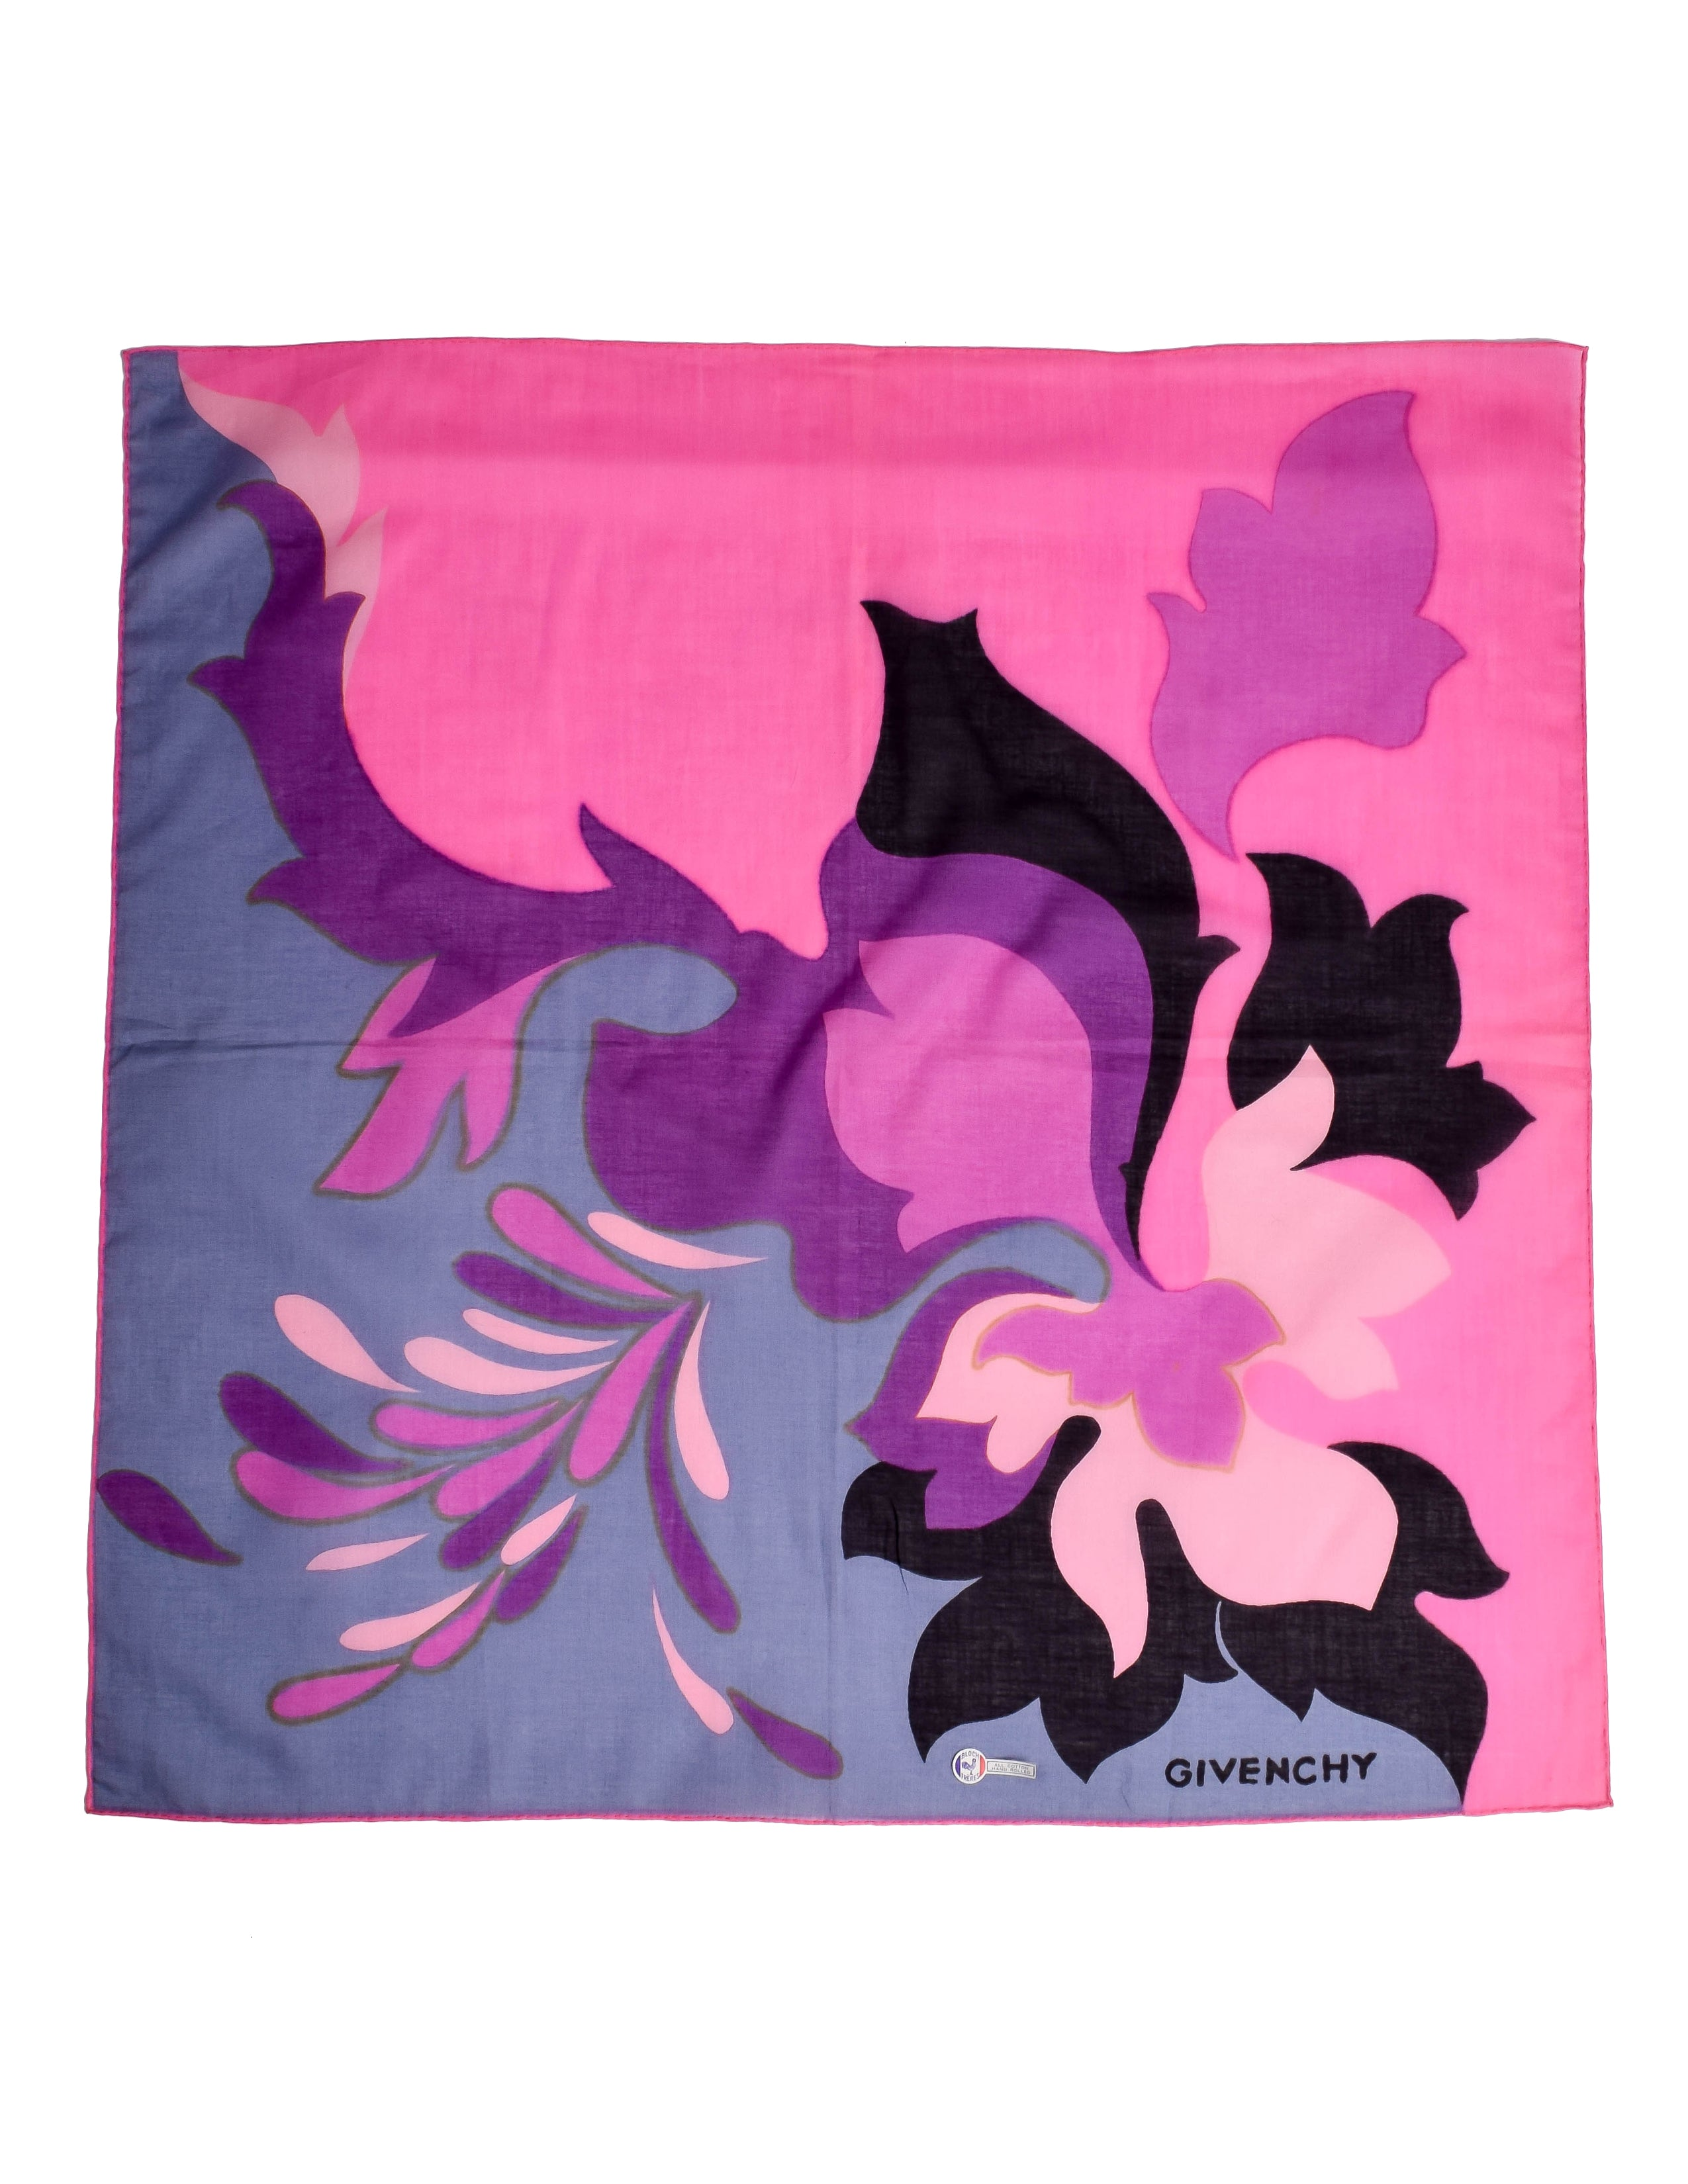 Givenchy Vintage Pink Floral Cotton Scarf